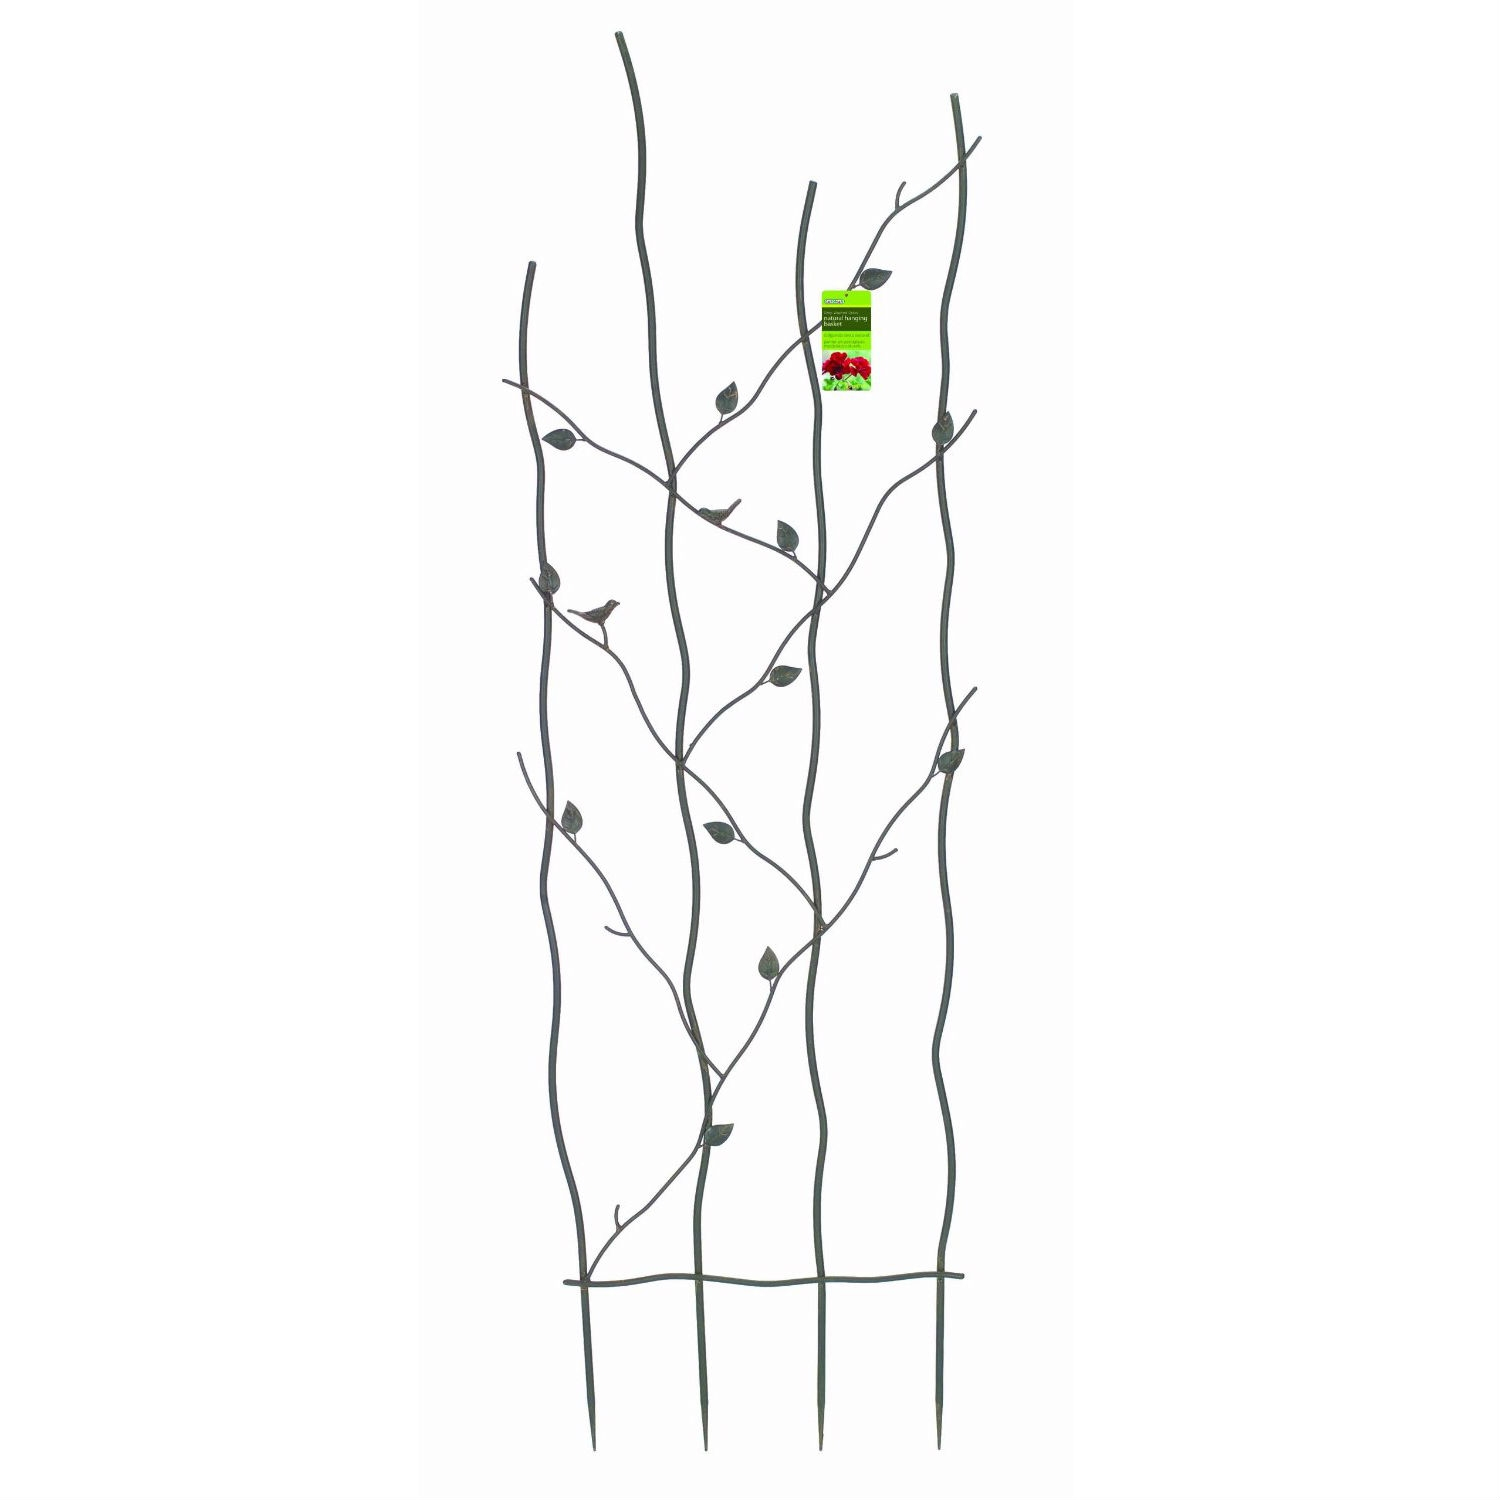 """60-inch High Metal Garden Trellis with Climbing Vine Leaf Design, GNMT41951 :  This 60-inch High Metal Garden Trellis with Climbing Vine Leaf Design adds an interesting feature to your garden wall, fence or screen. Delicate looking branches and fun little birds decorate the undulating design. Sturdy steel construction with powder-coated polyester epoxy finish. Espresso color. Perfect for long-stemmed or climbing plants such as roses, sweet peas and clematis. Measures: 5' tall x 20"""" wide."""